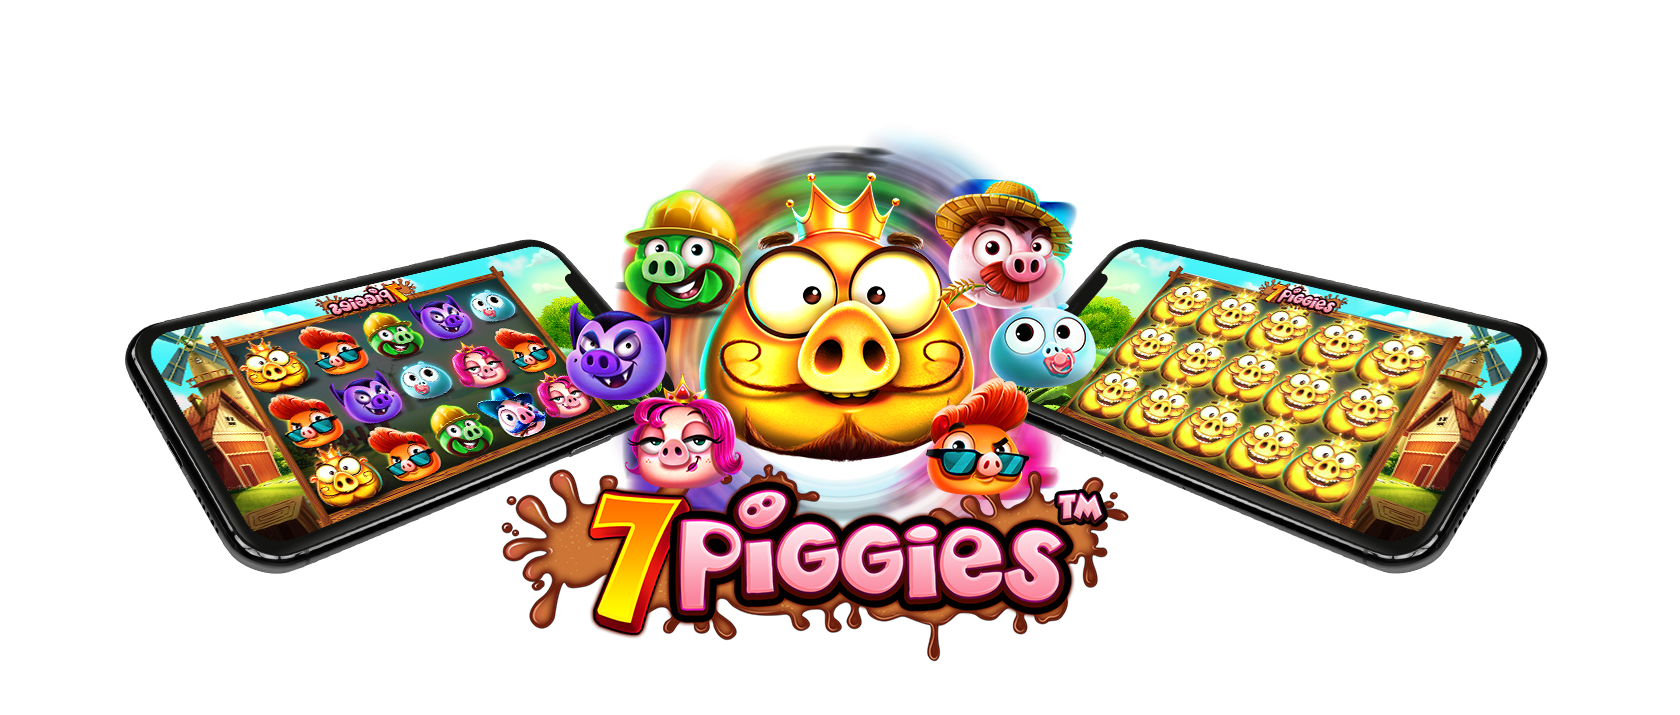 7 piggies slots game logo